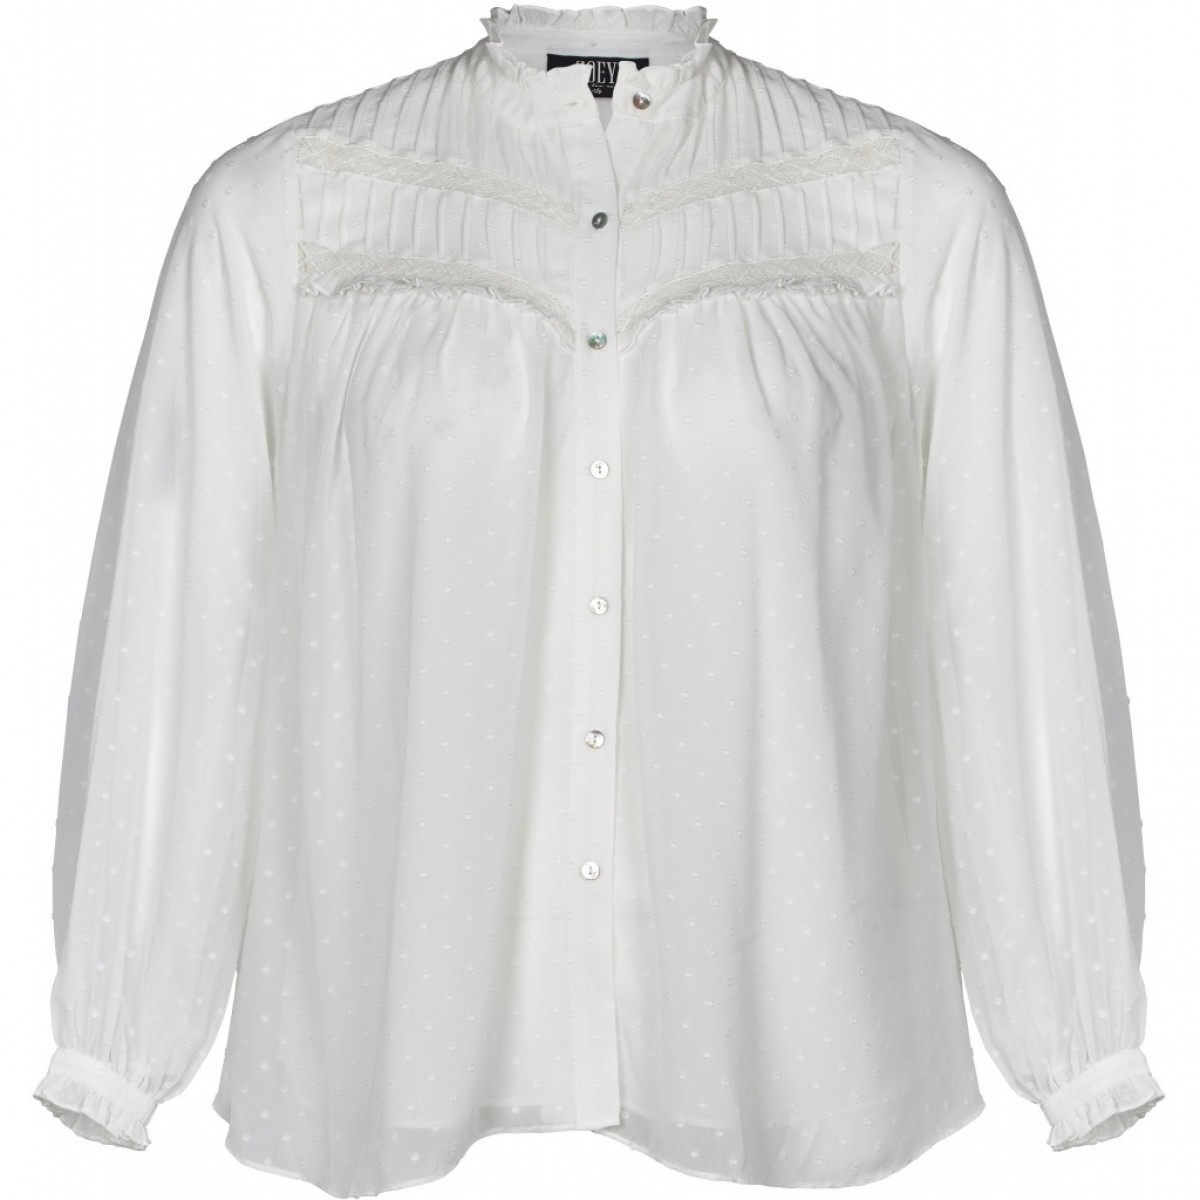 Zoey 194-0840 Blouses